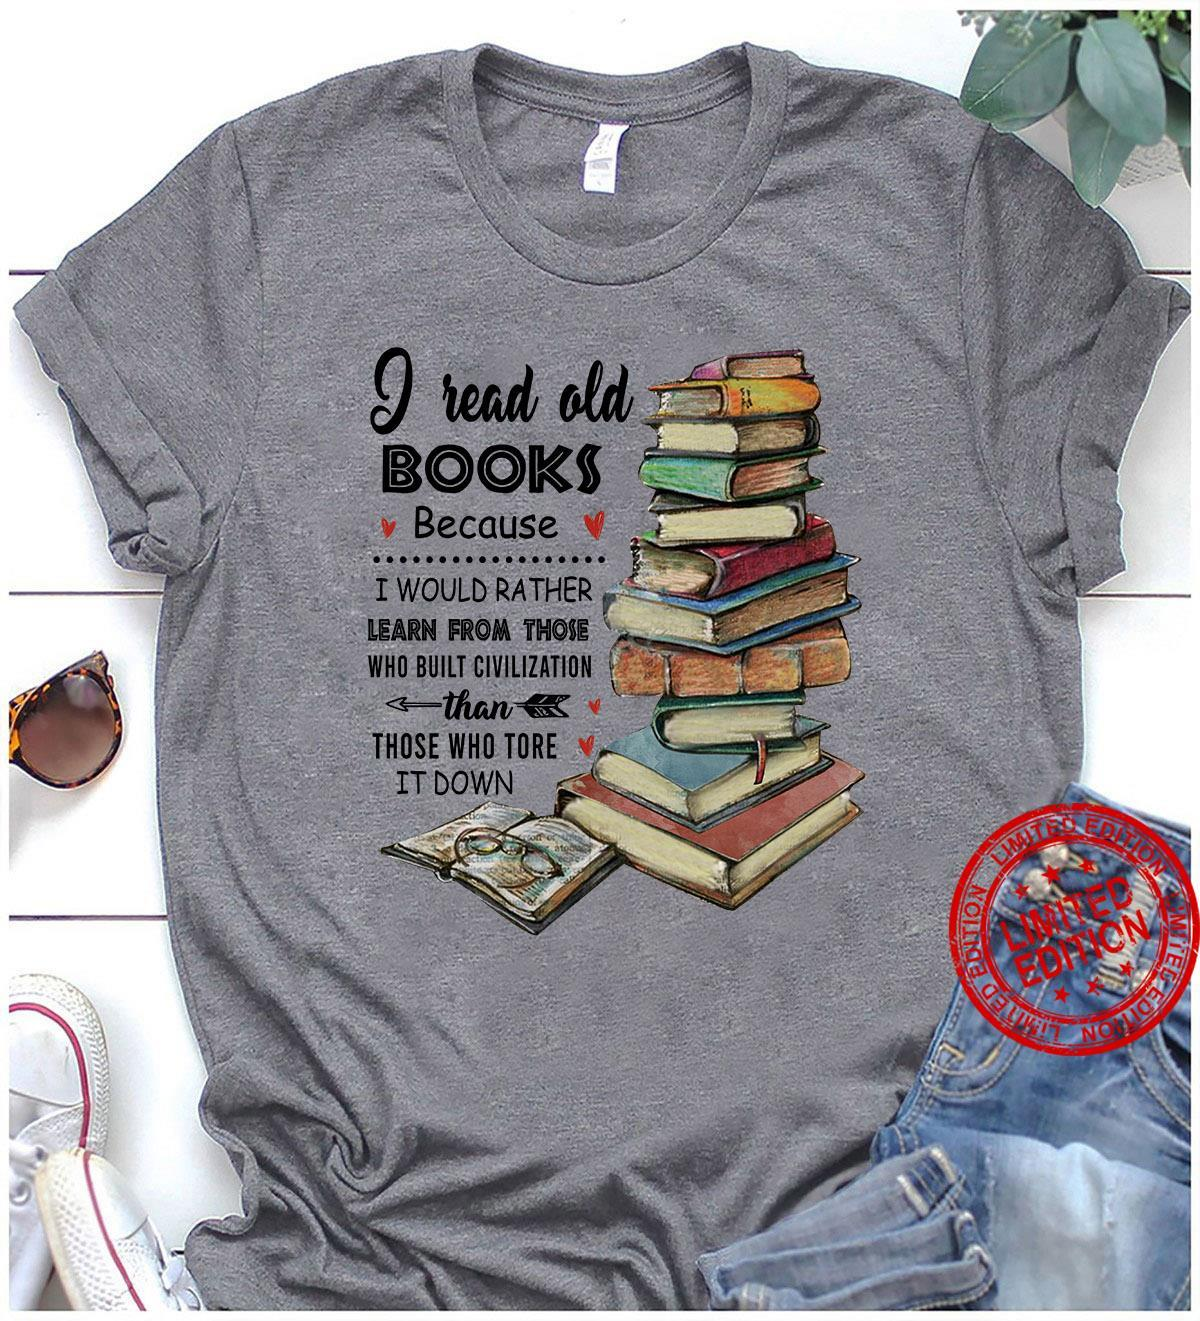 I Read Old Books Because I Would Rather Learn From Those Than Those Who Tore It Down Shirt